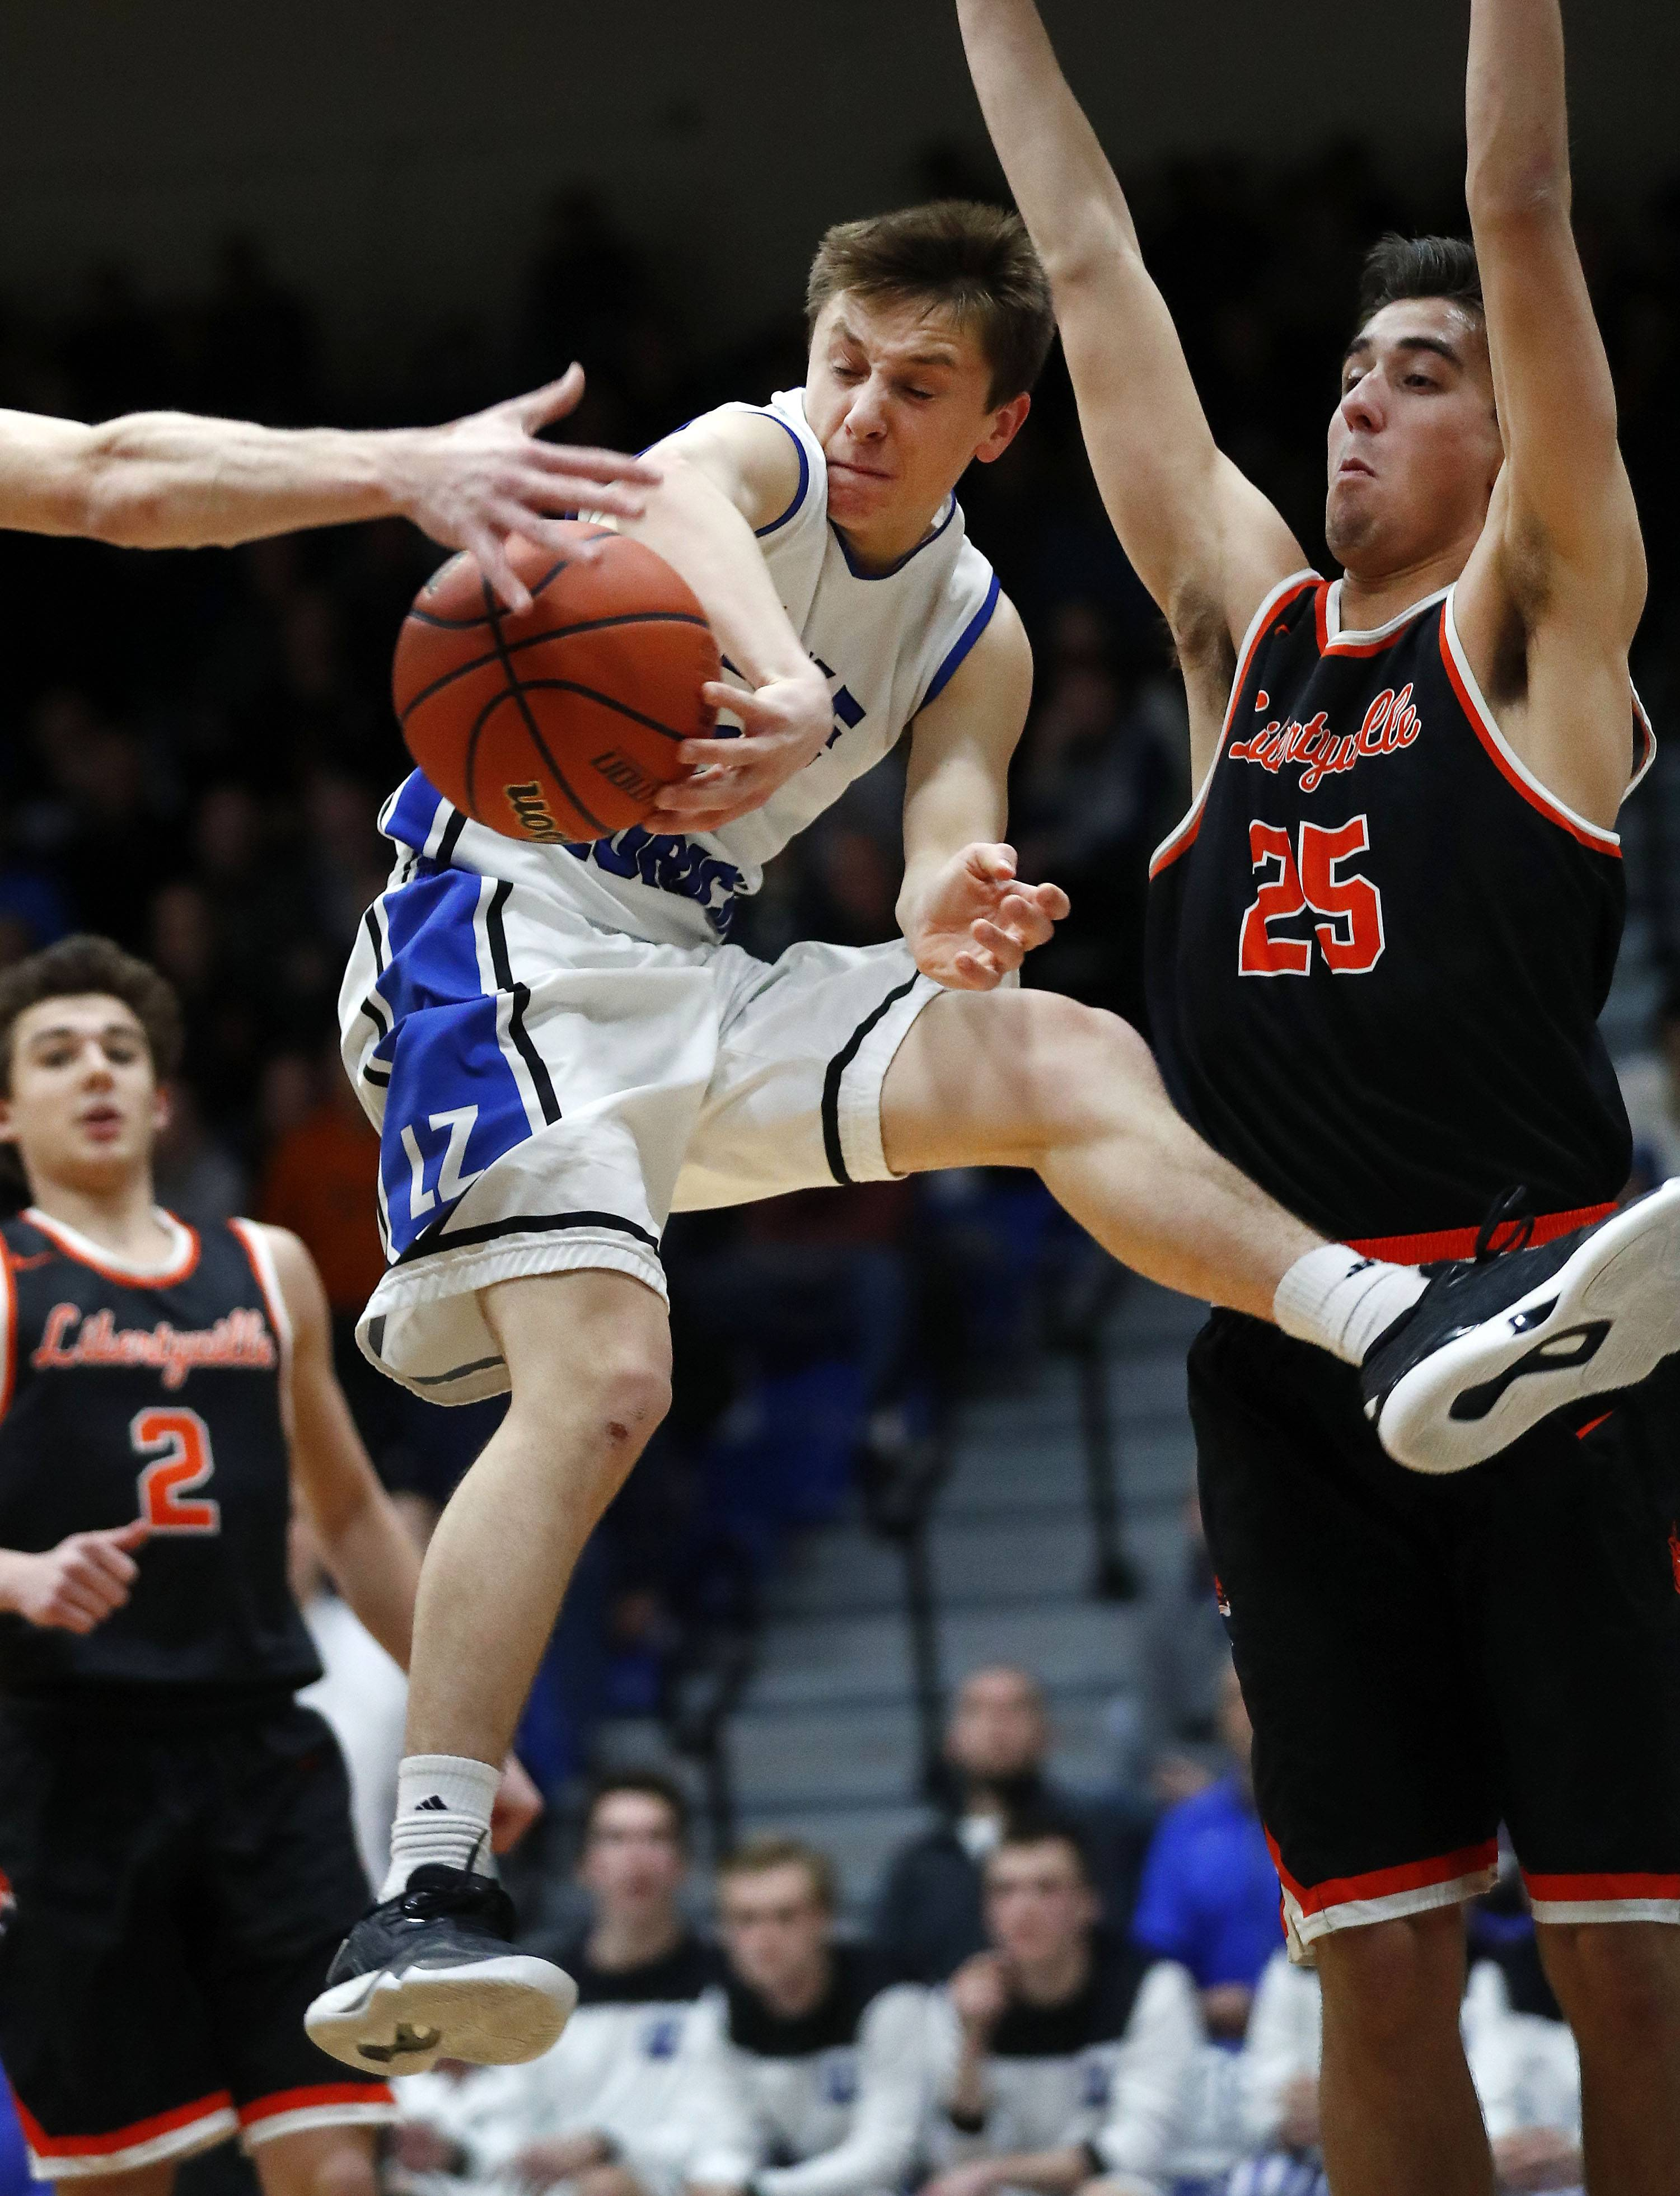 Lake Zurich's JR Cison dishes off as Libertyville's Chase Eyre defends during the Class 4A sectional semifinal at Lake Zurich High School on Tuesday.